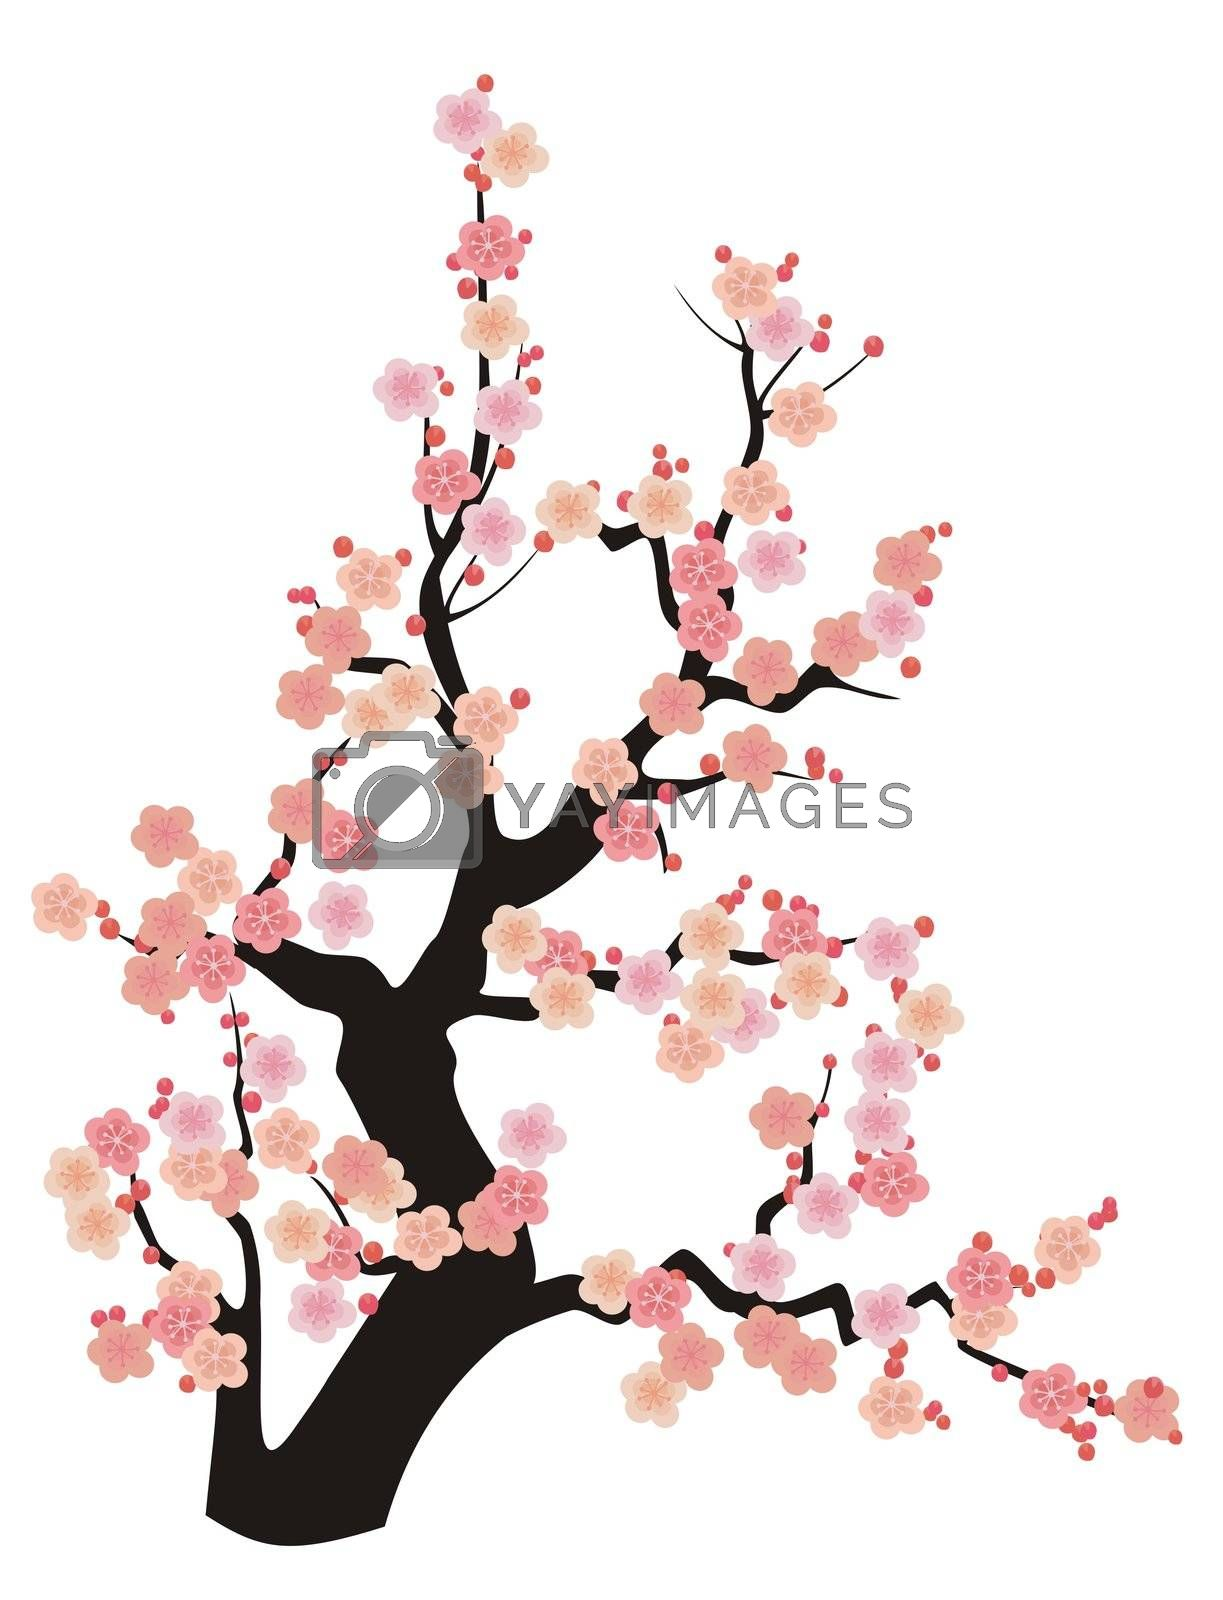 Cherry Blossom Illustration (Sakura), Asian style